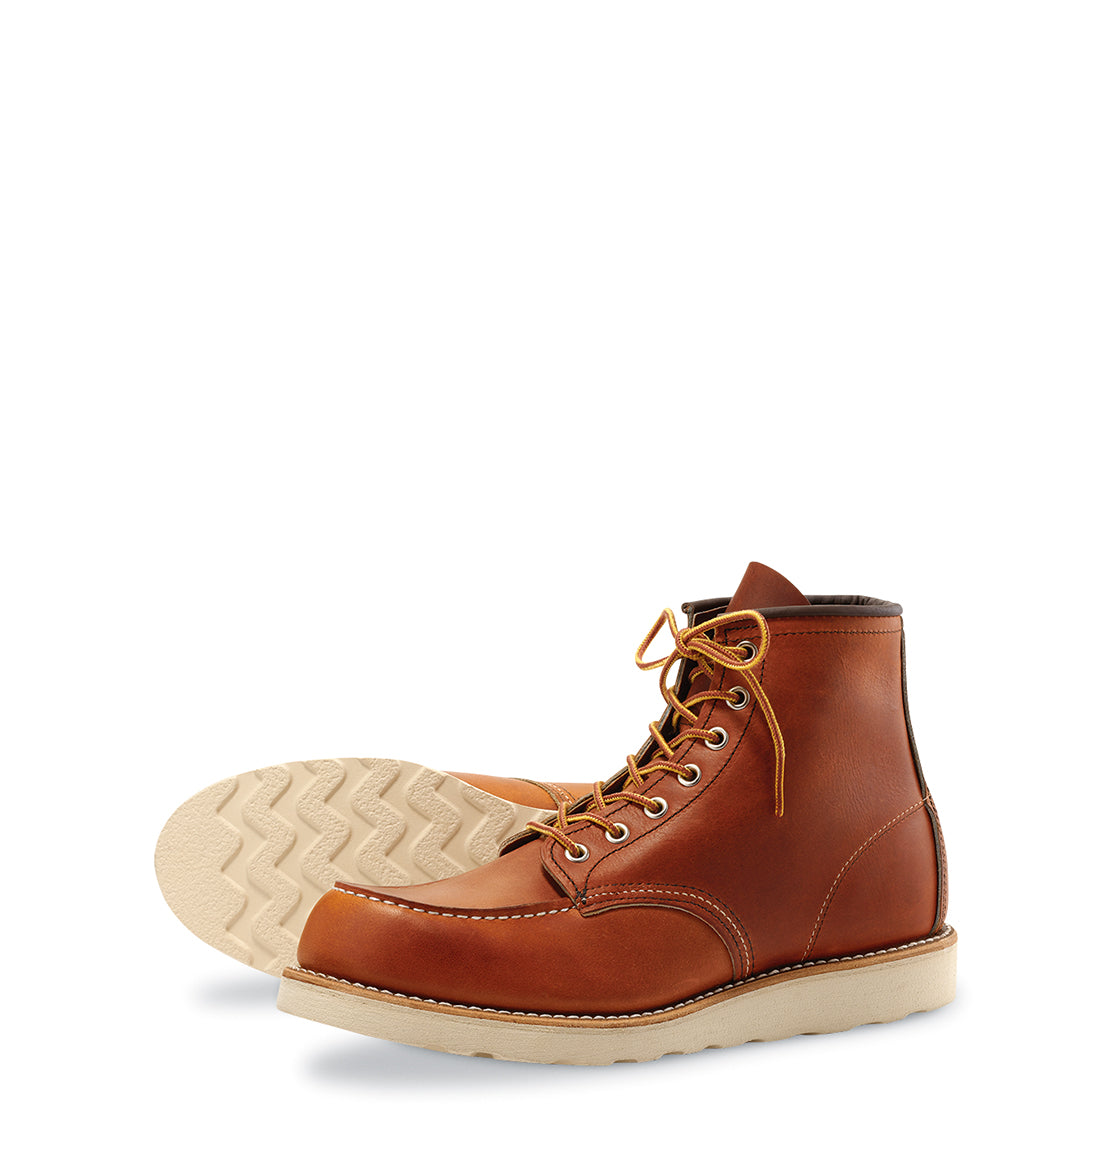 Redwing shoe laces Leicester